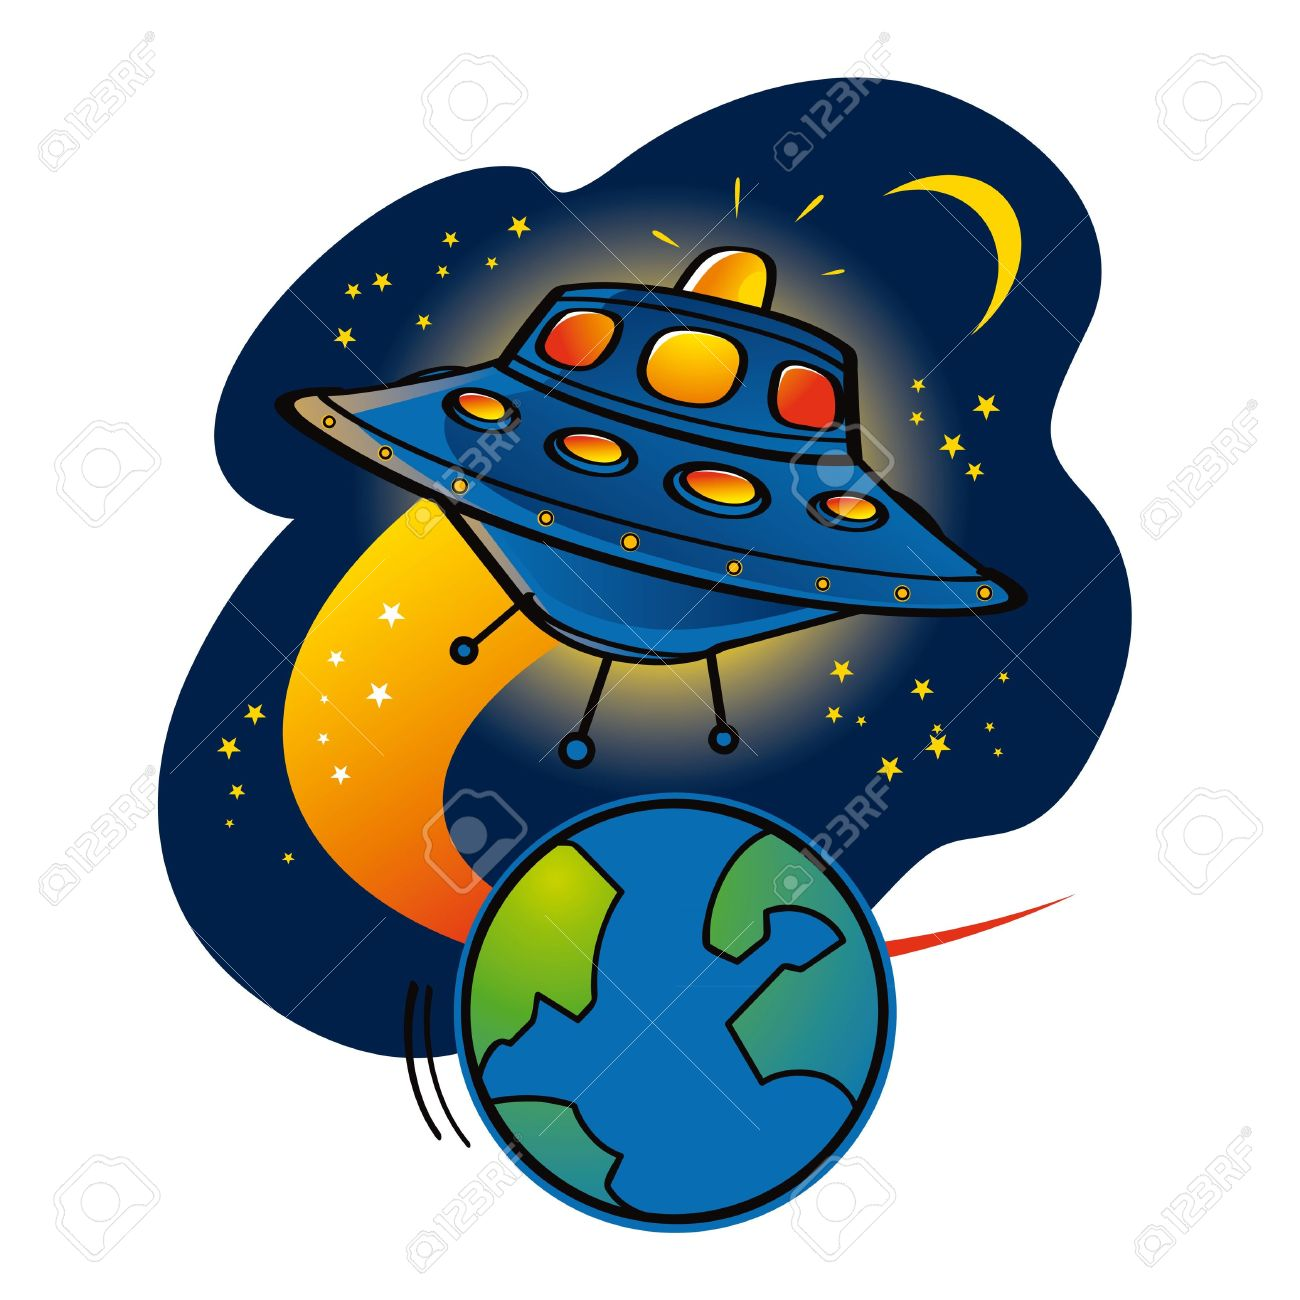 Space clipart #1, Download drawings